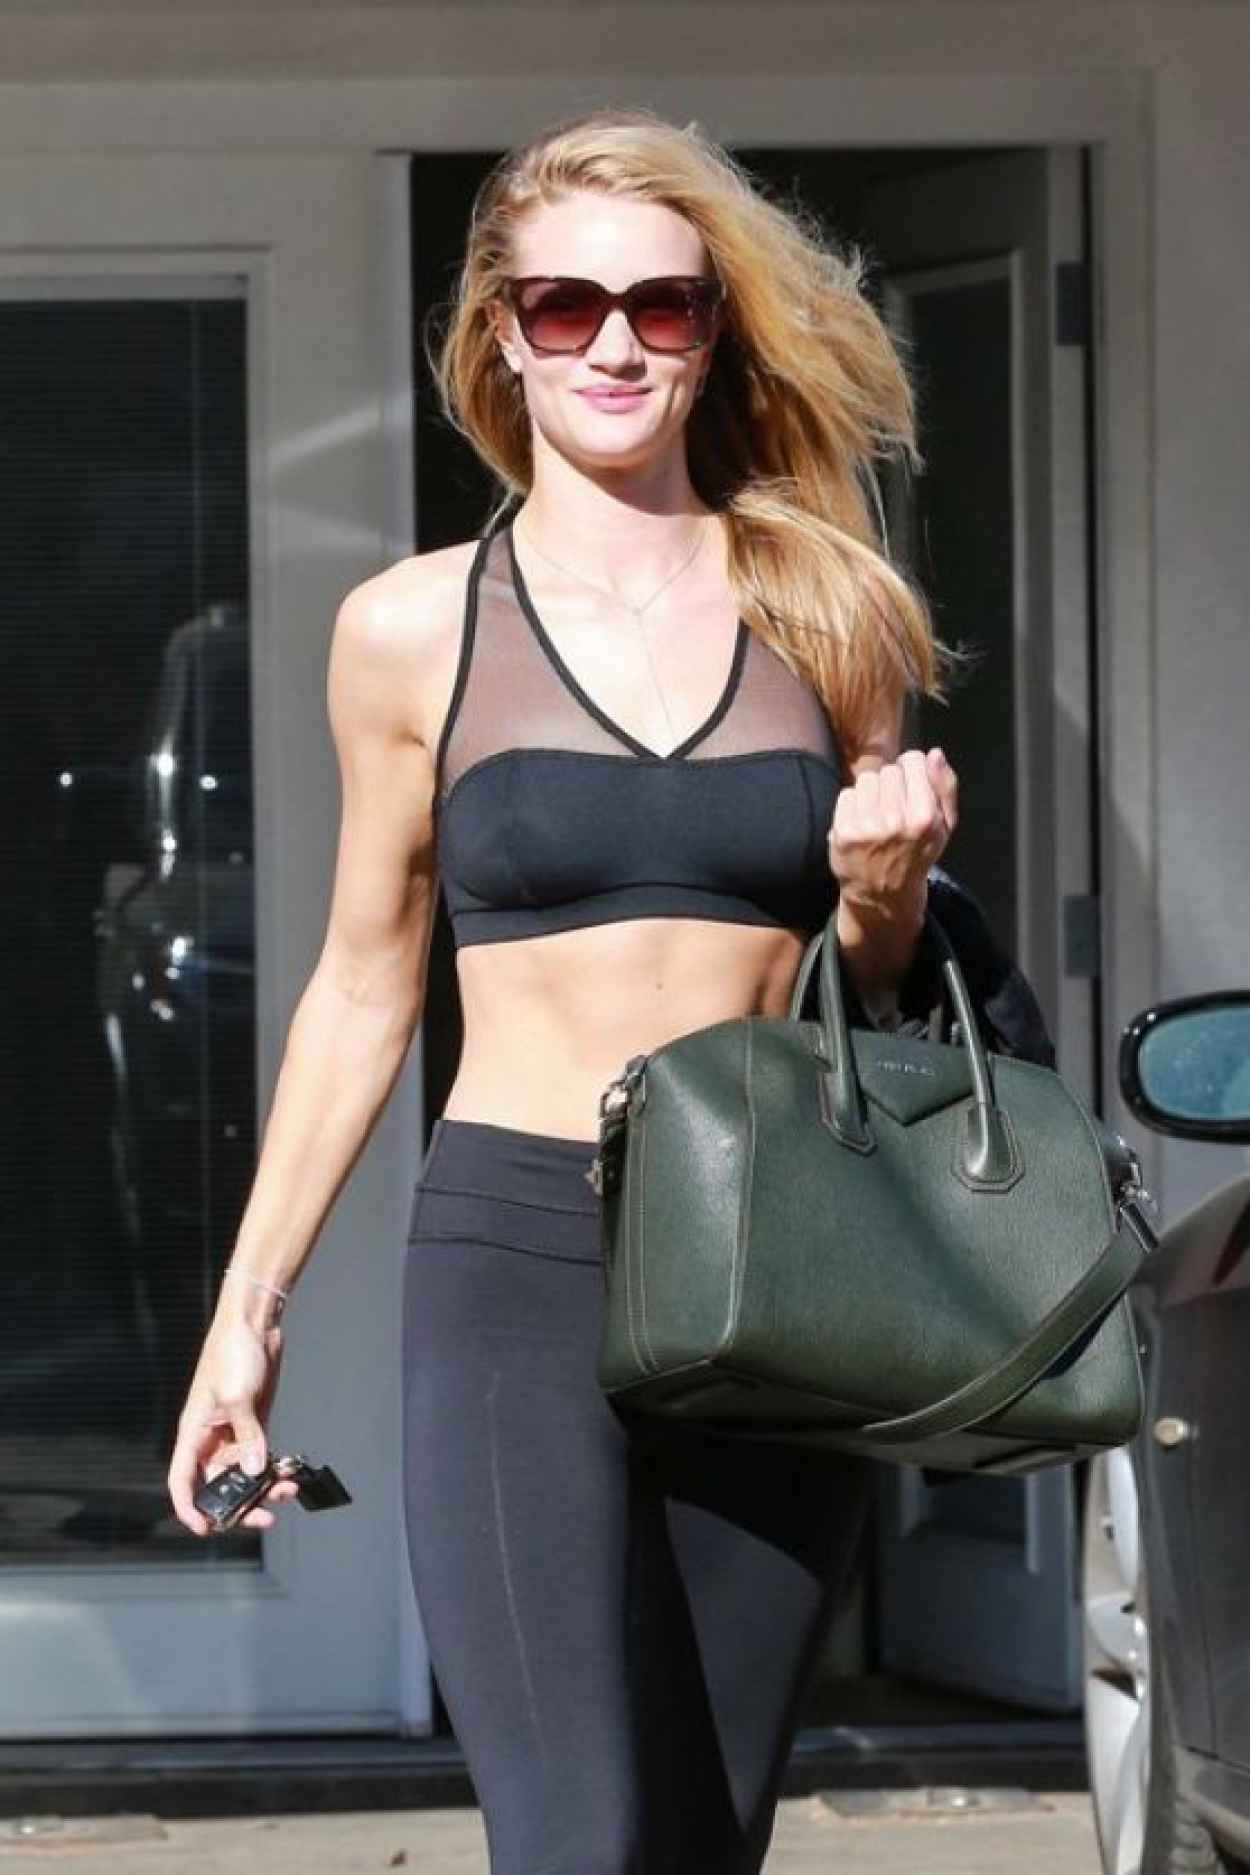 Rosie Huntington - Whiteley Gum Style - Leaving the Gym in West Hollywood - January 2015-1